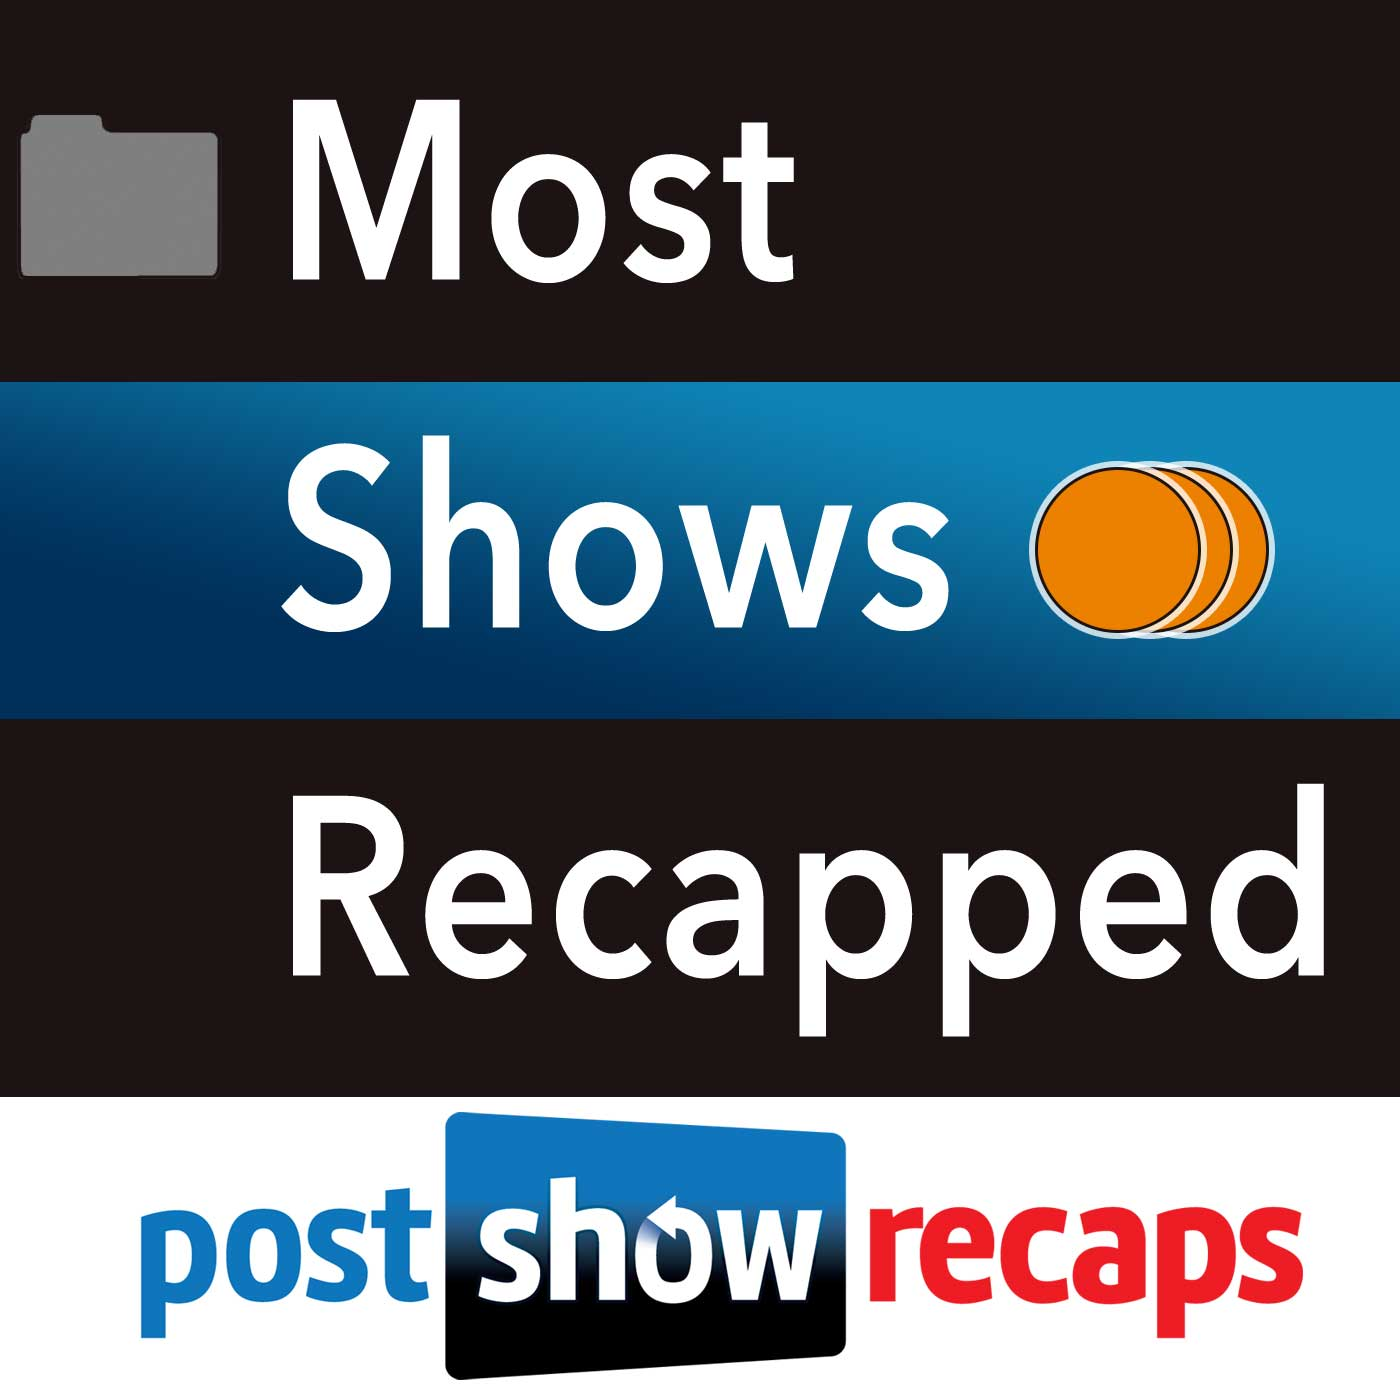 Most Shows Recapped – Post Show Recaps